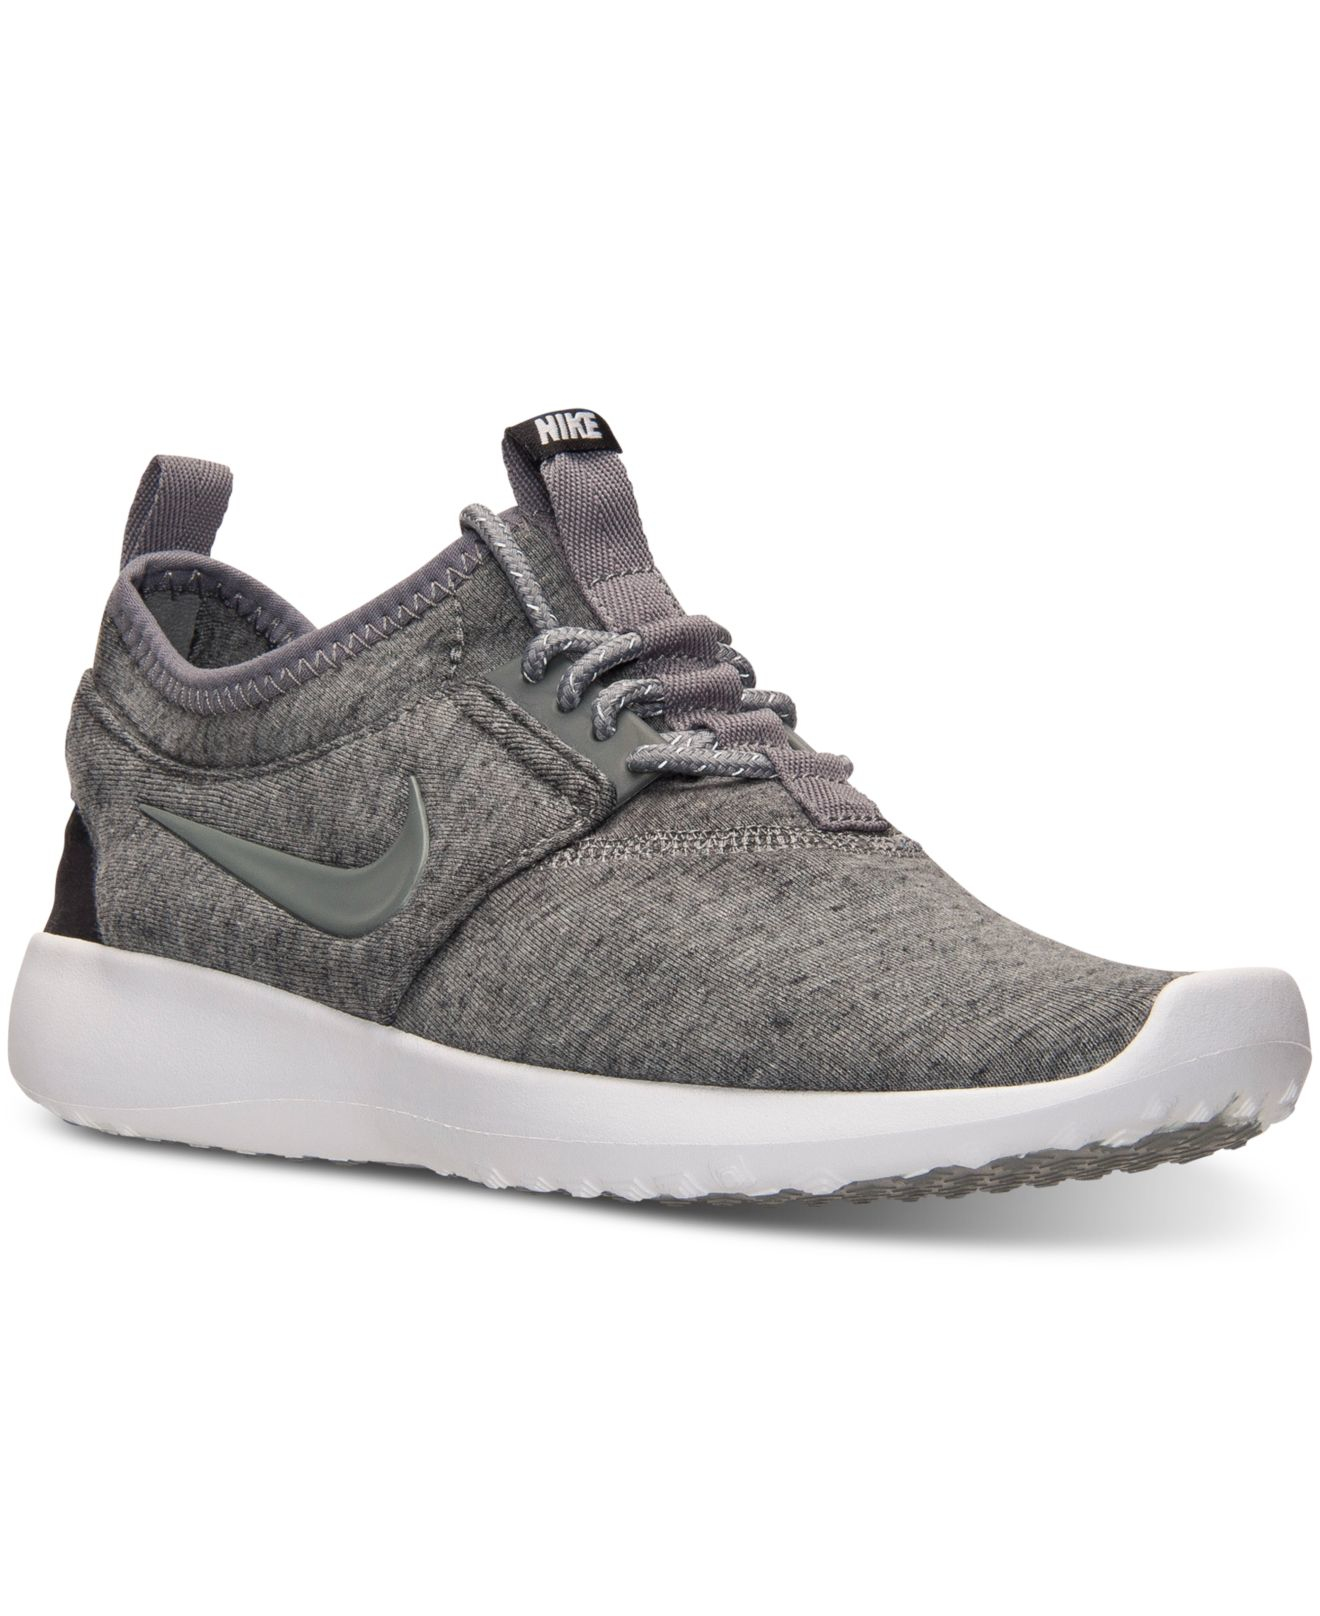 nike women 39 s juvenate tech pack casual sneakers from. Black Bedroom Furniture Sets. Home Design Ideas